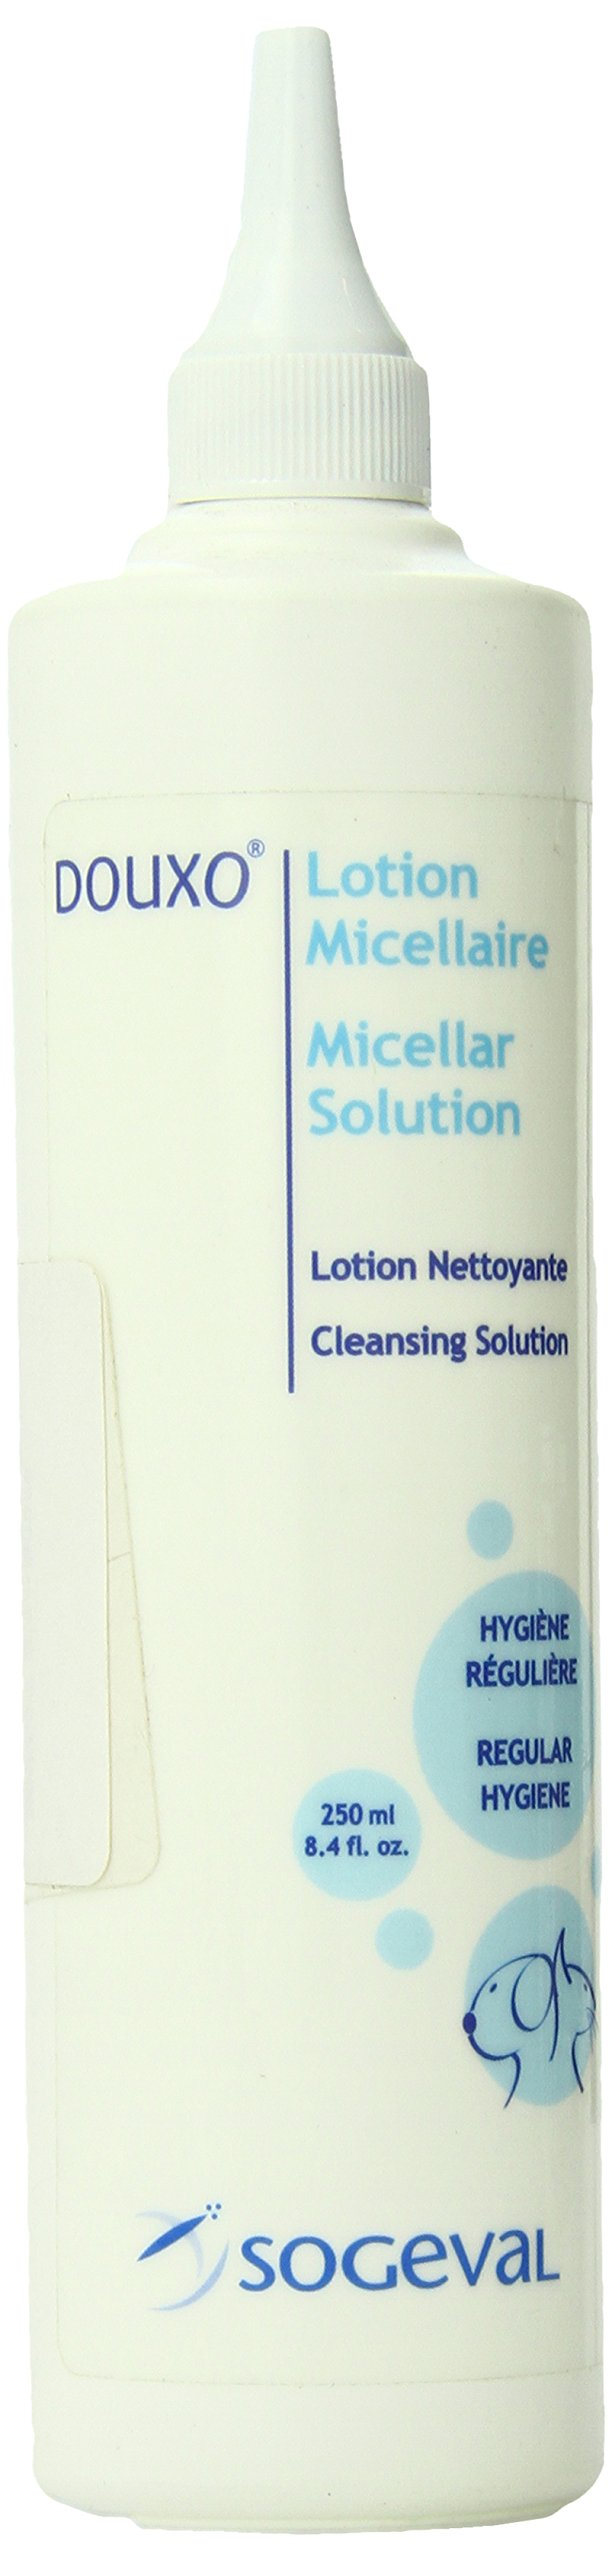 Sogeval Douxo Micellar Bottle Ear Solution 8.4 oz